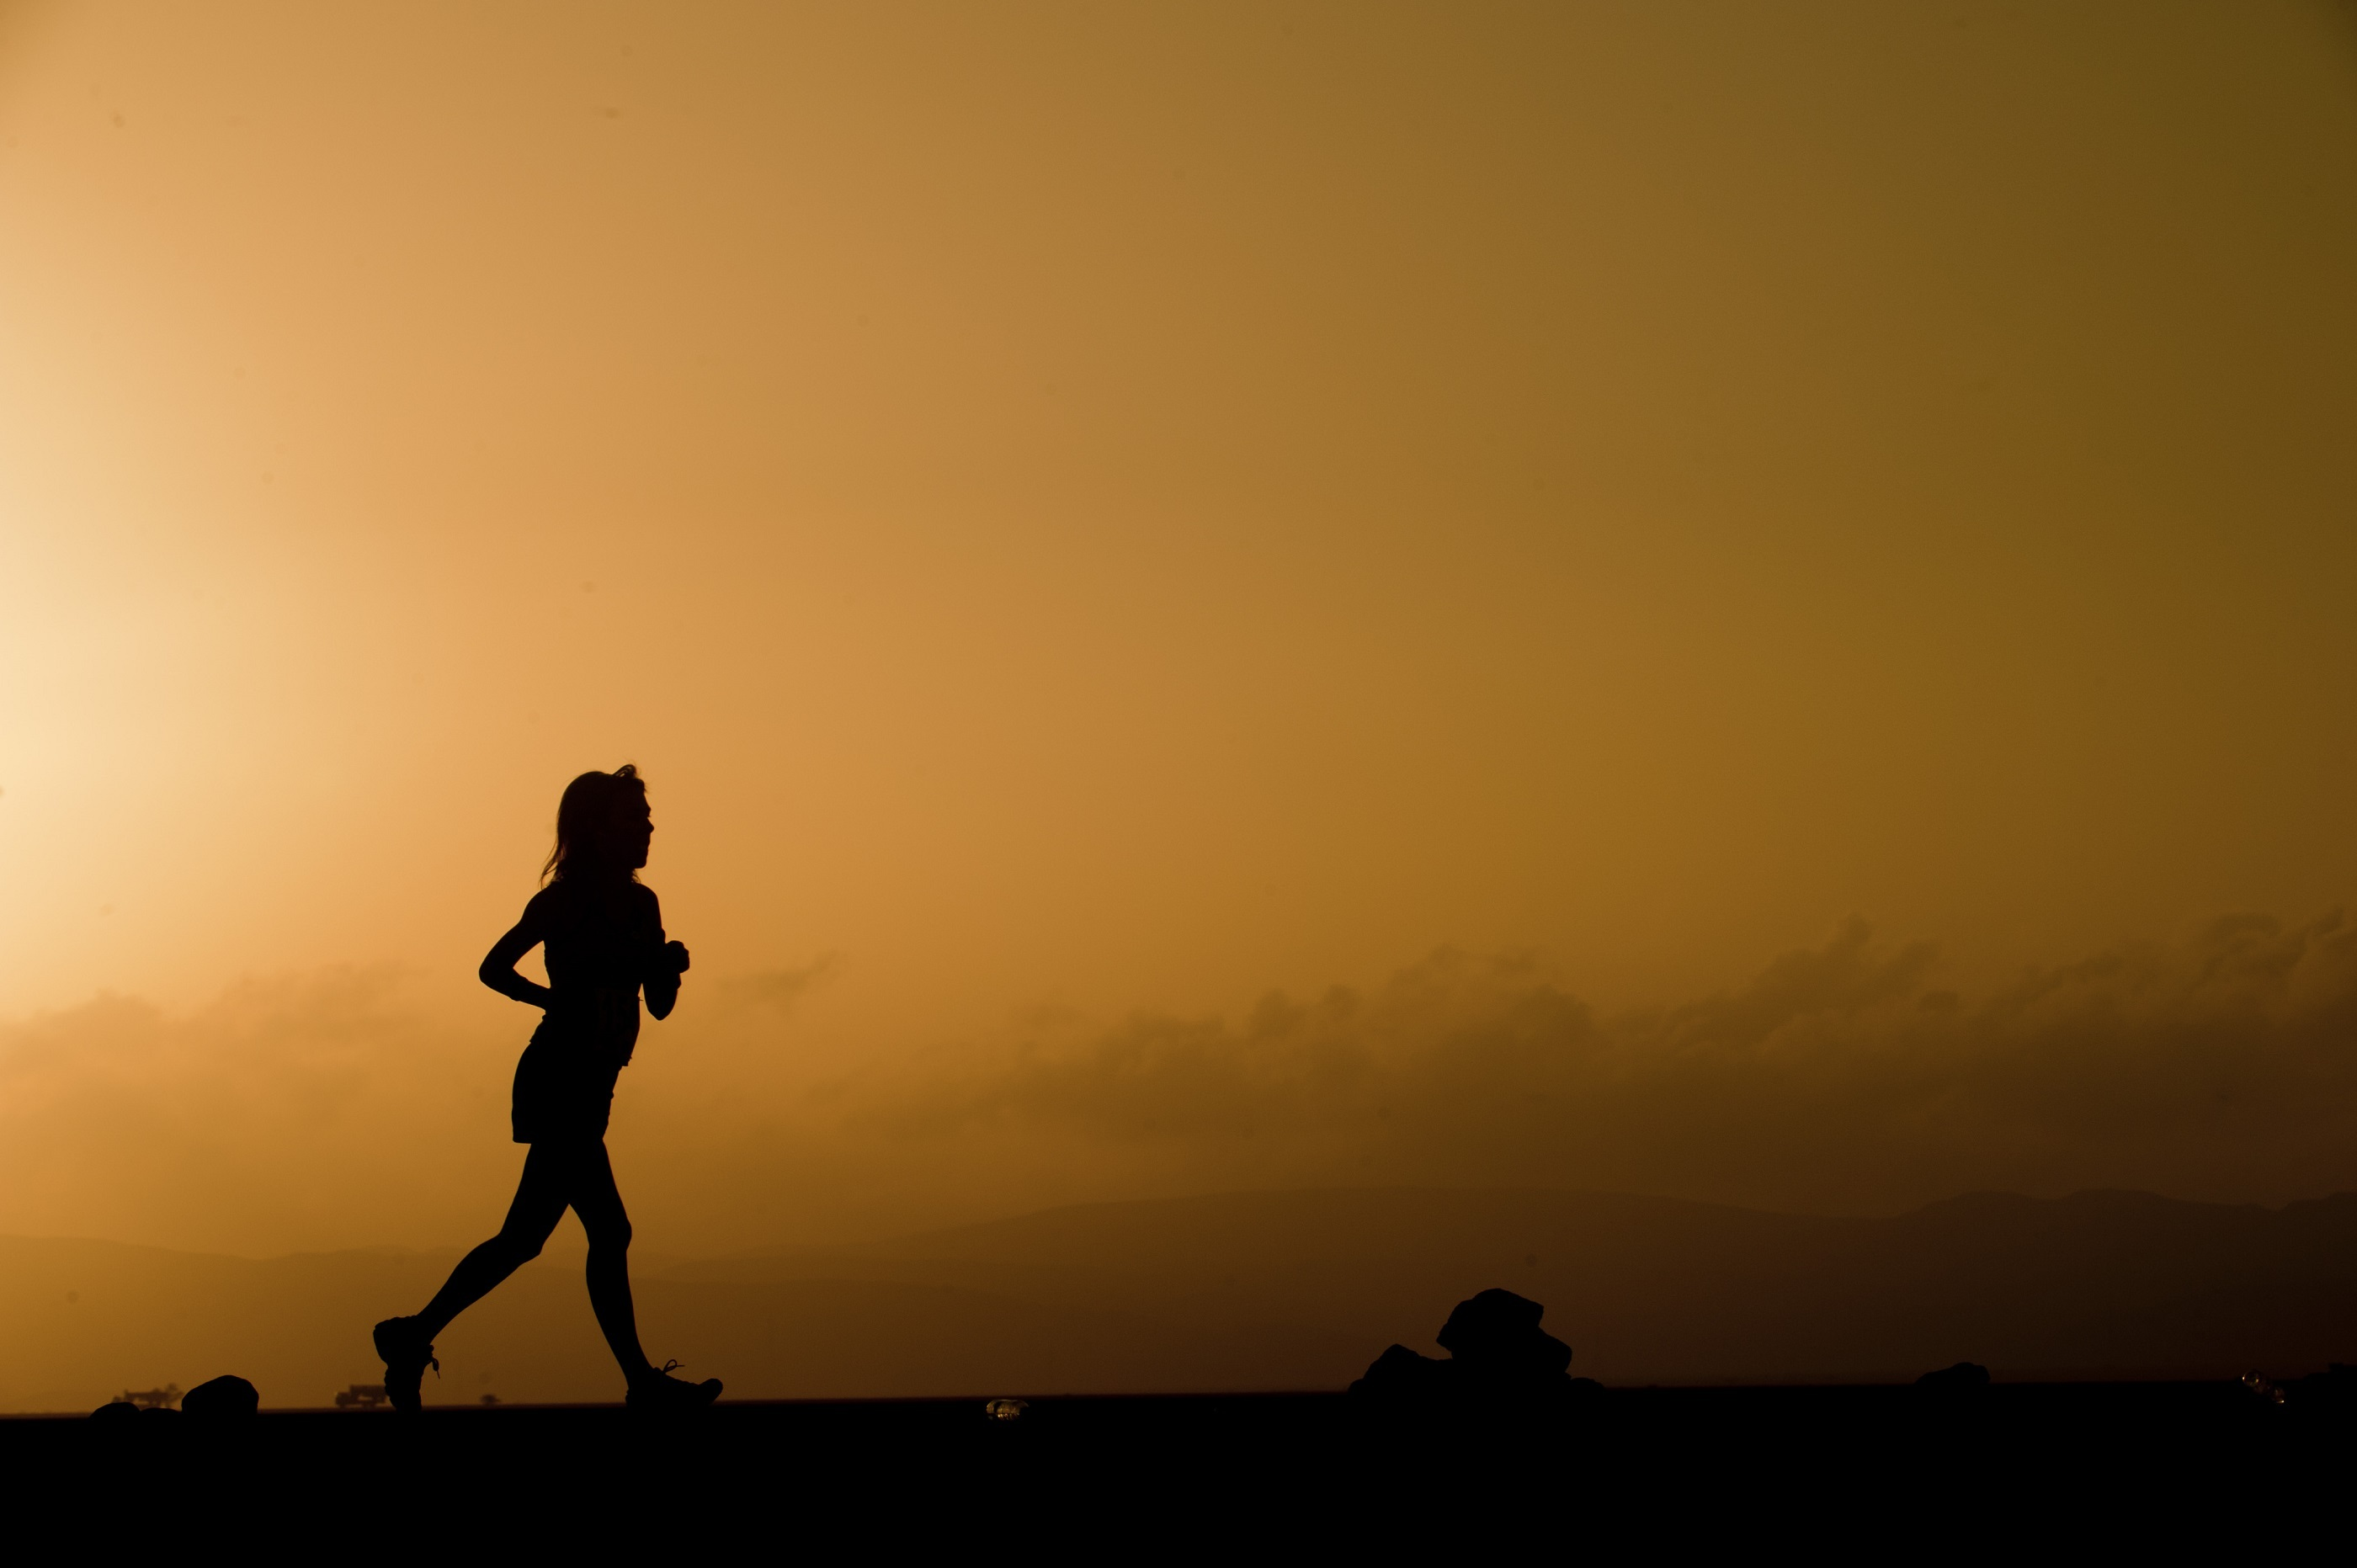 Silhouette running photo